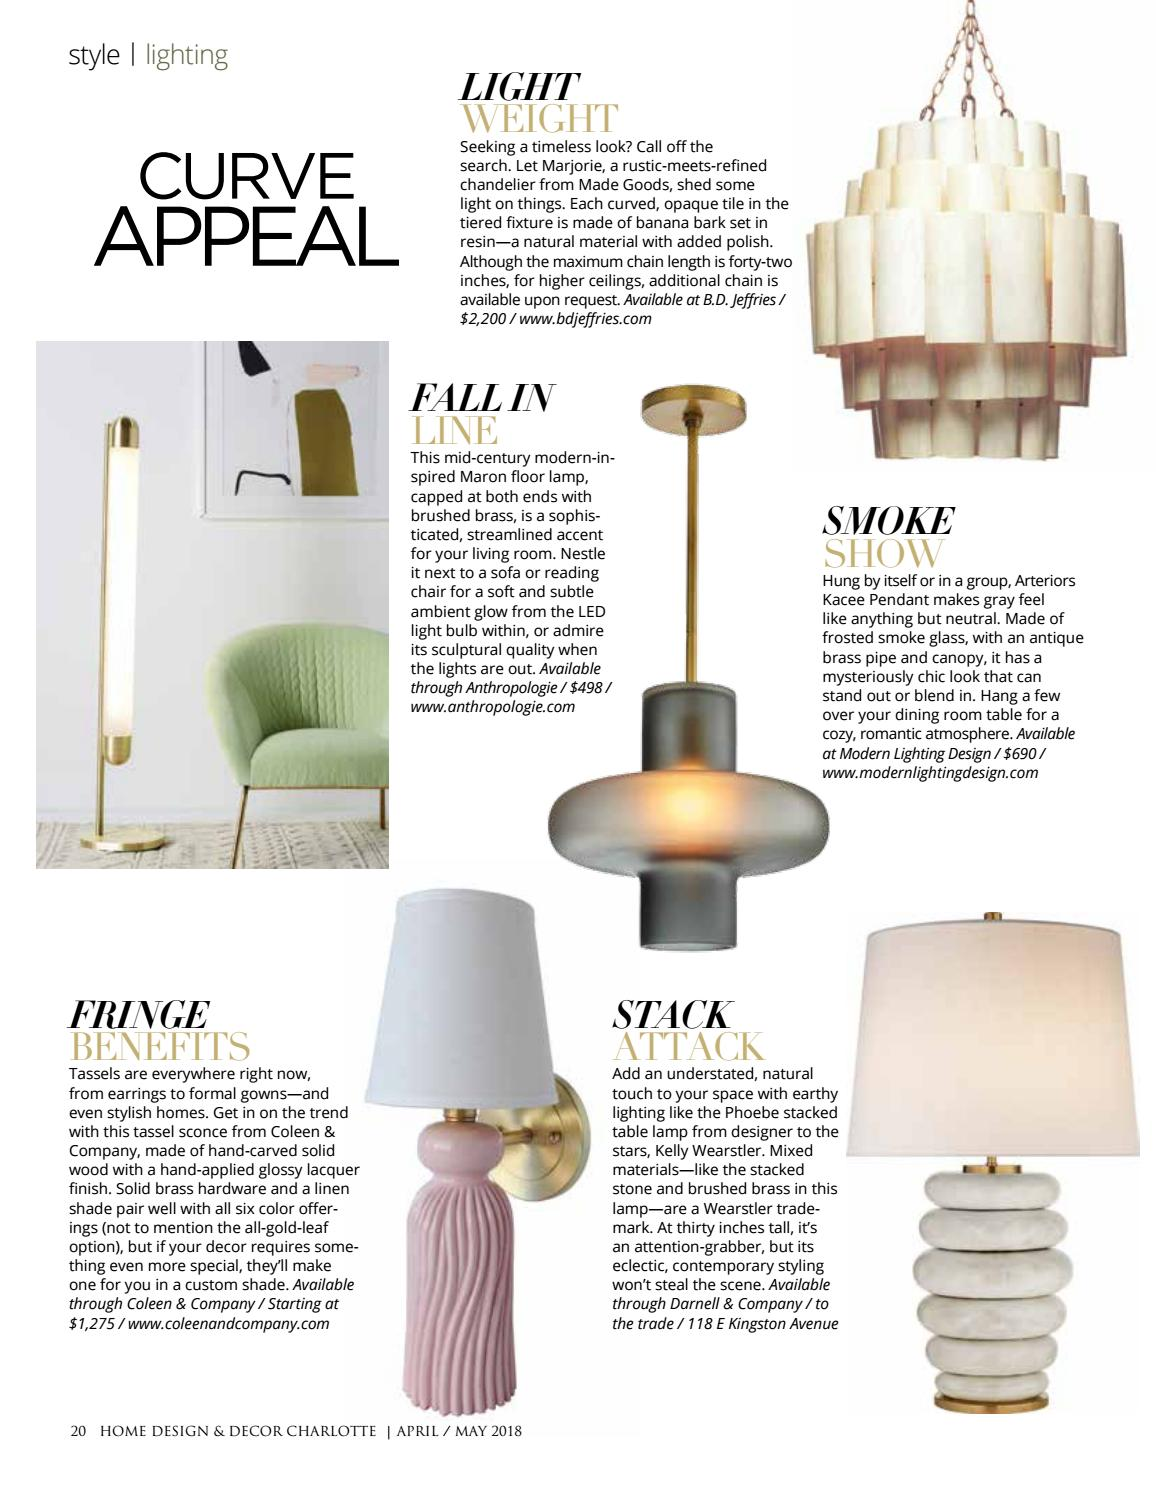 Charlotte April May 2018 by Home Design & Decor Magazine - issuu